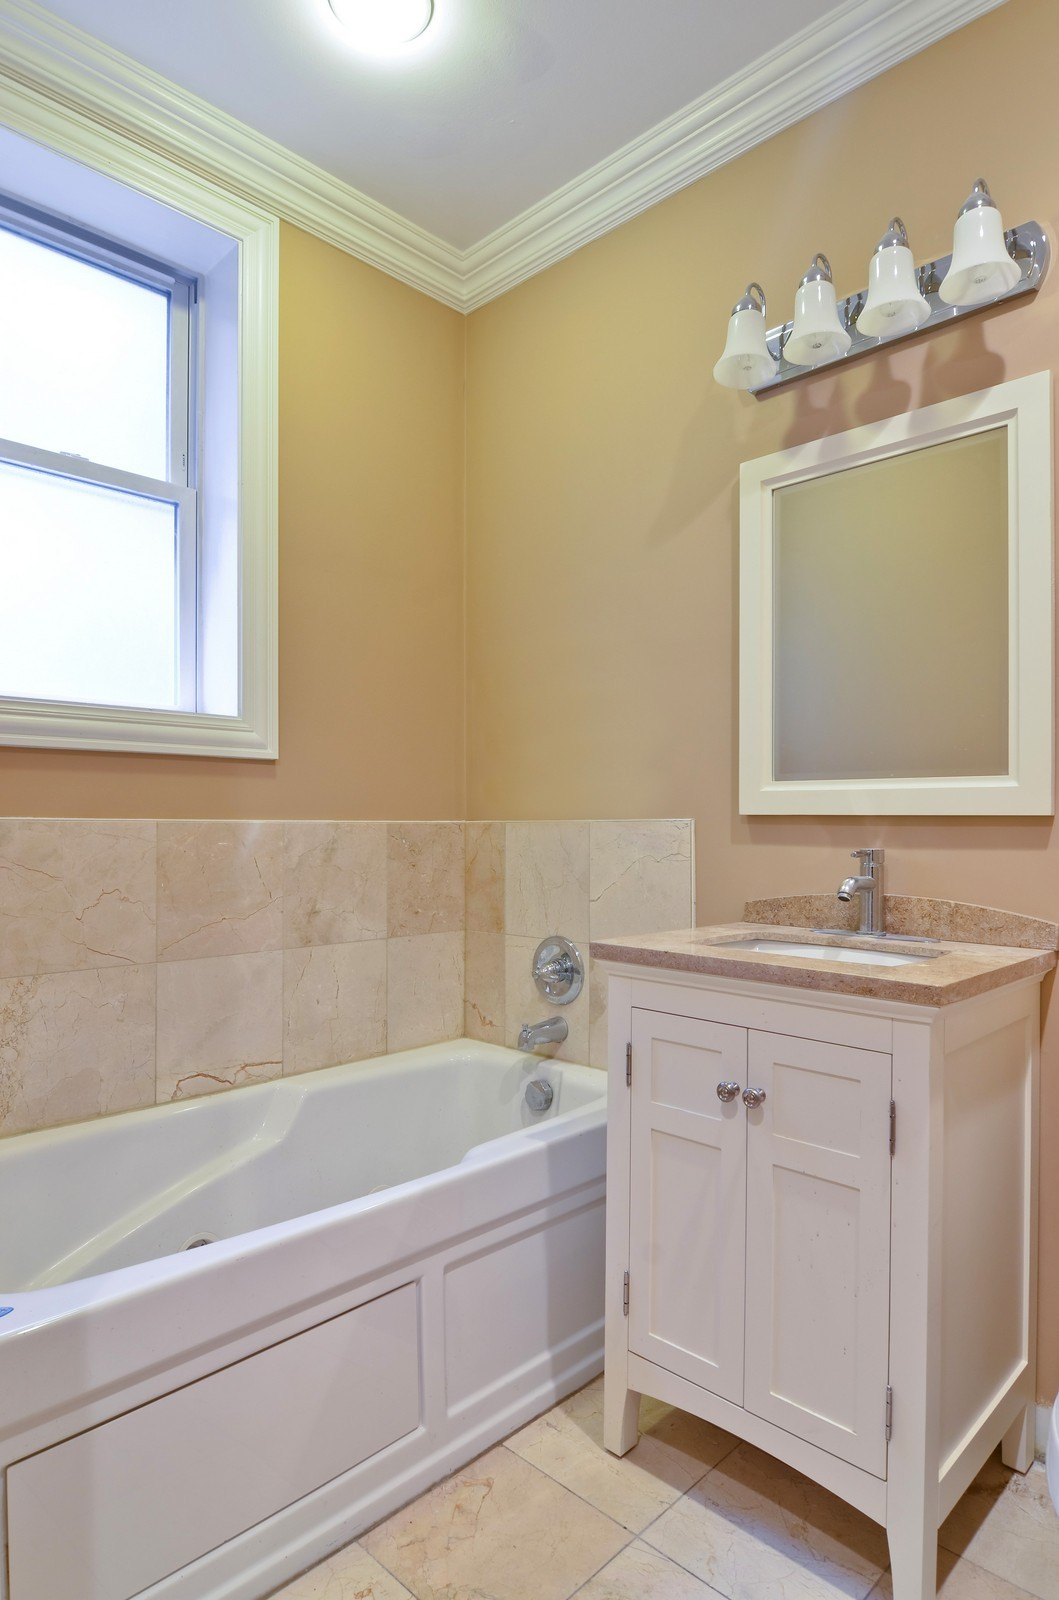 Real Estate Photography - 1908 N Whipple, Unit 2, Chicago, IL, 60647 - Bathroom